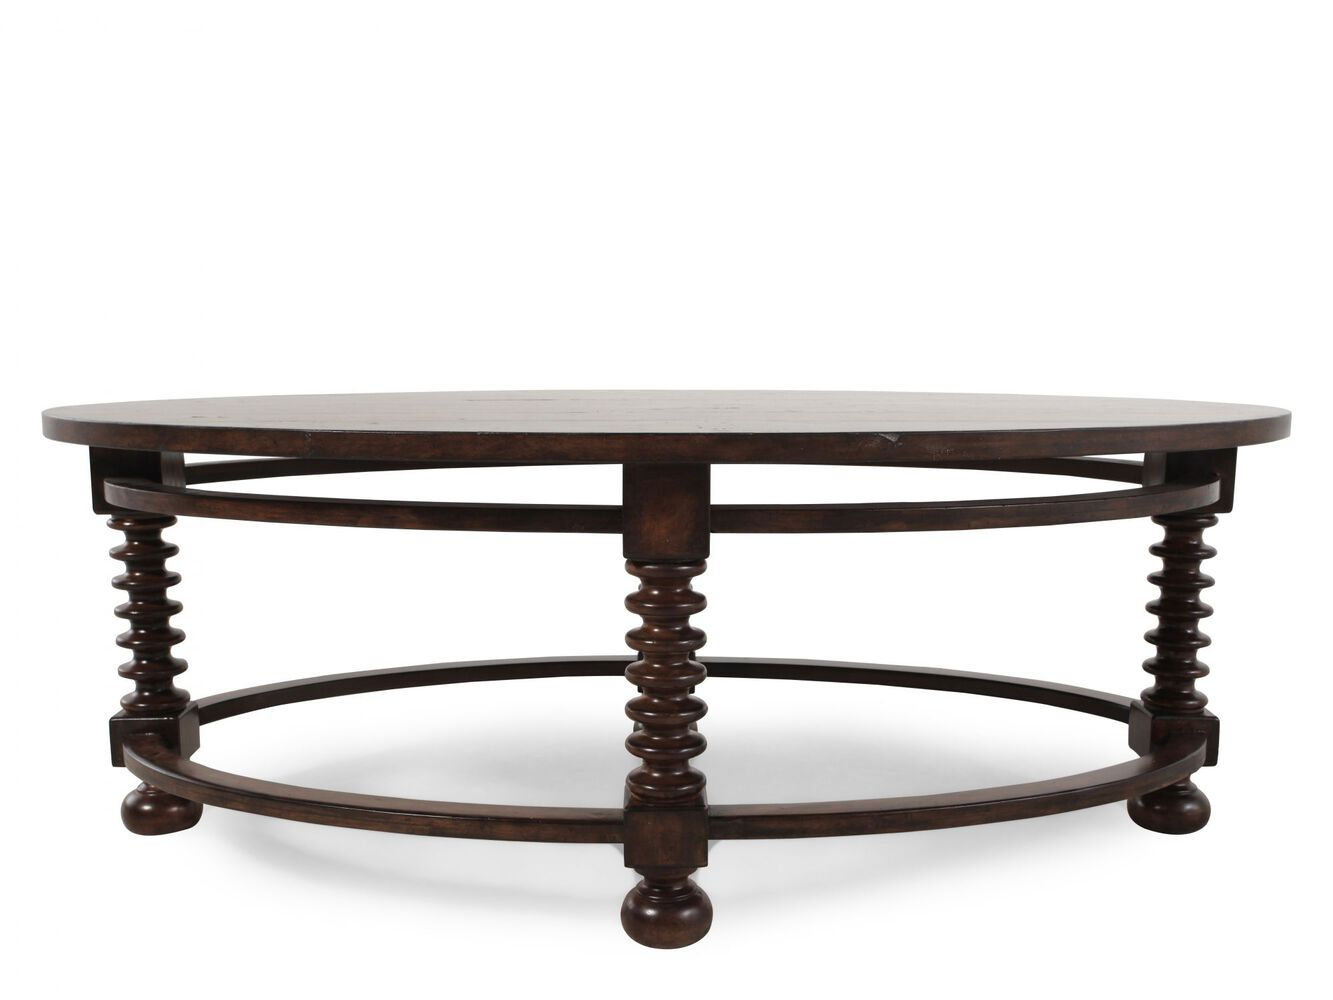 Bernhardt interiors vestige oval cocktail table mathis brothers furniture Bernhardt coffee tables